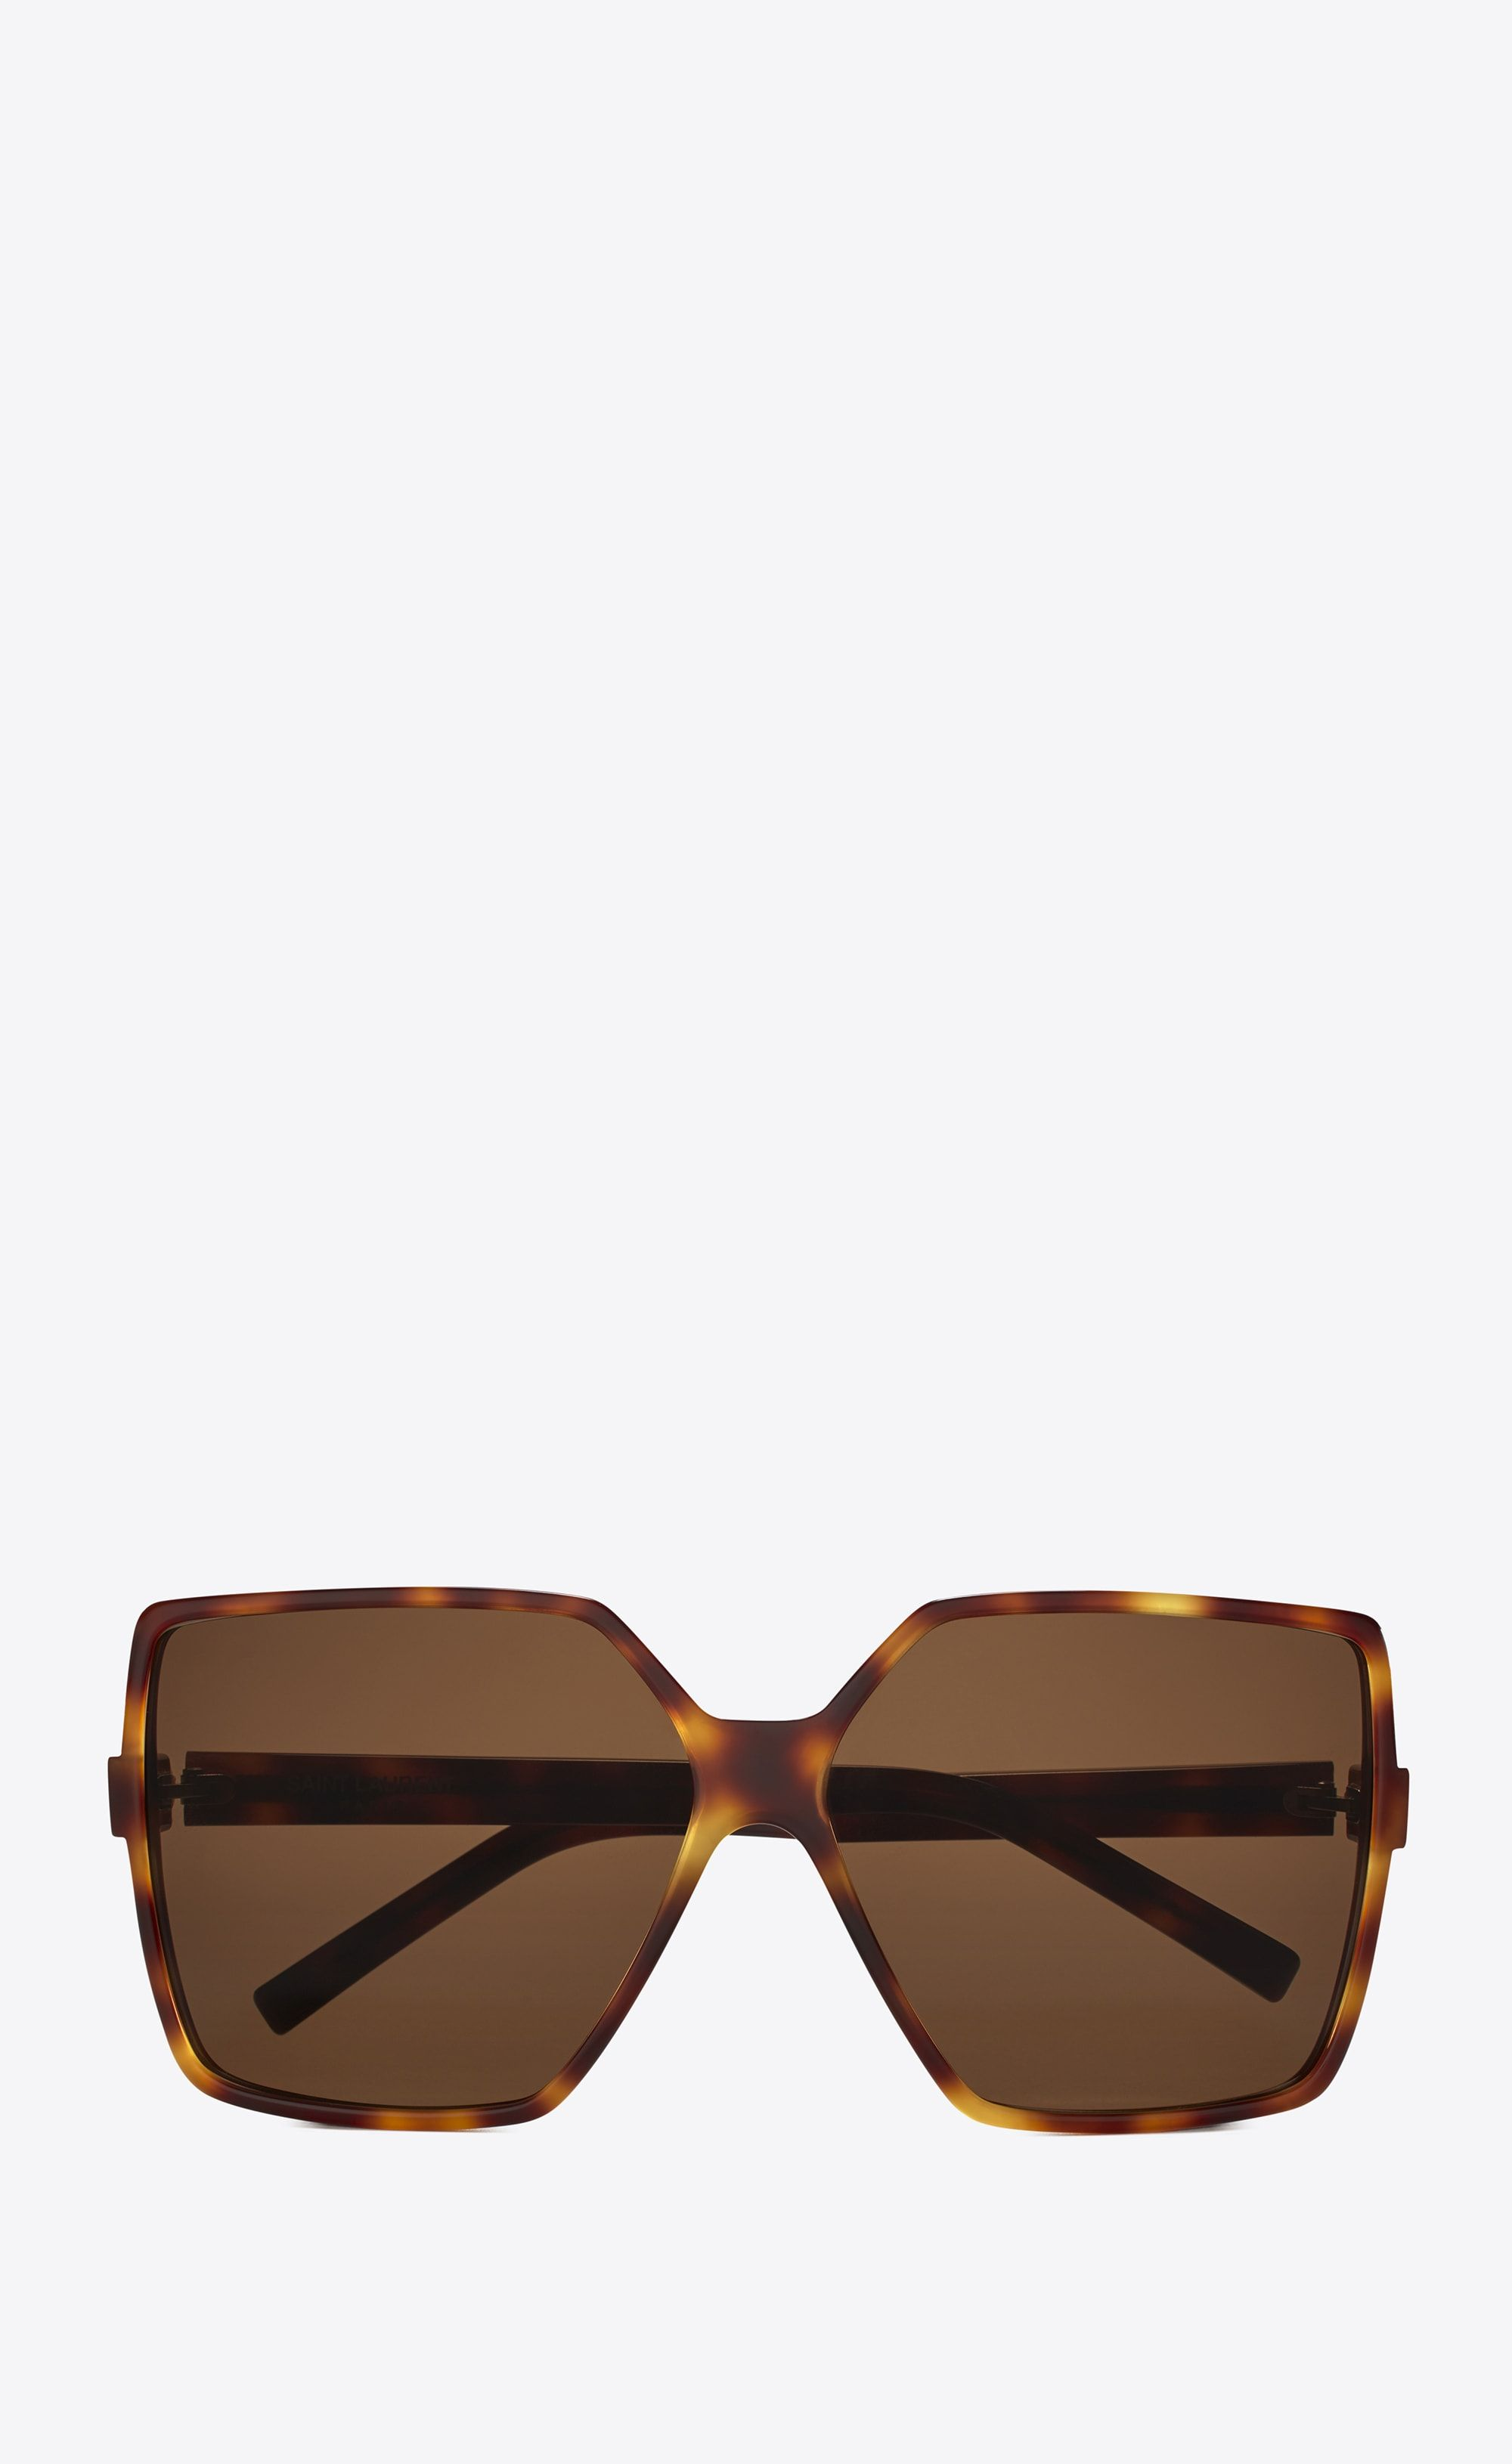 383ea59c7df Saint Laurent - New Wave 232 Betty sunglasses in havana acetate with  tobacco-colored lenses ( 405)